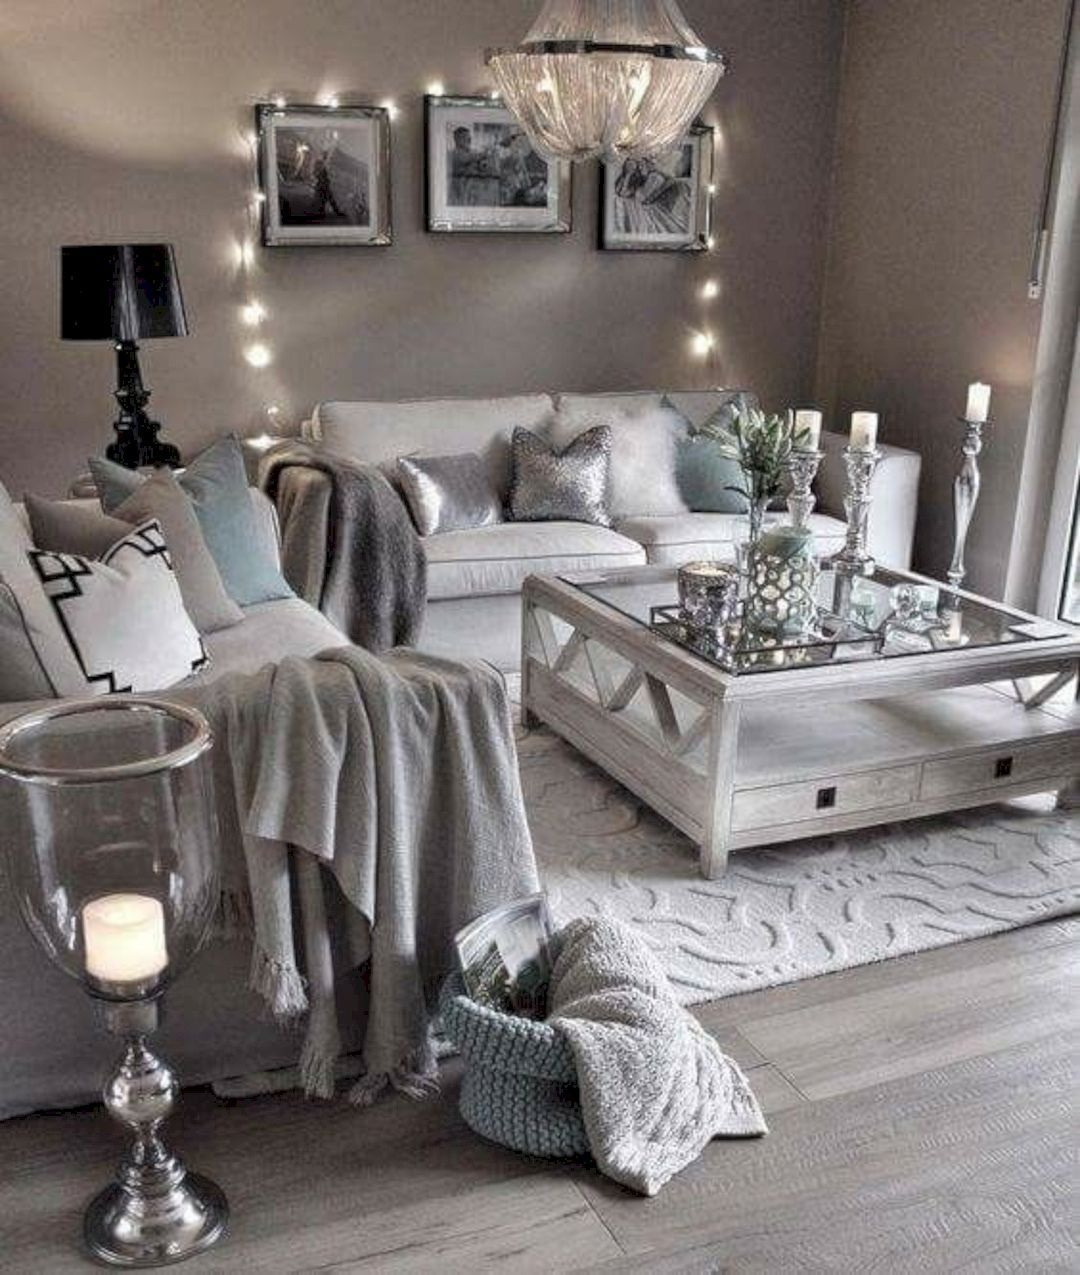 16 Enticing Wall Decorating Ideas For Your Living Room Shabby